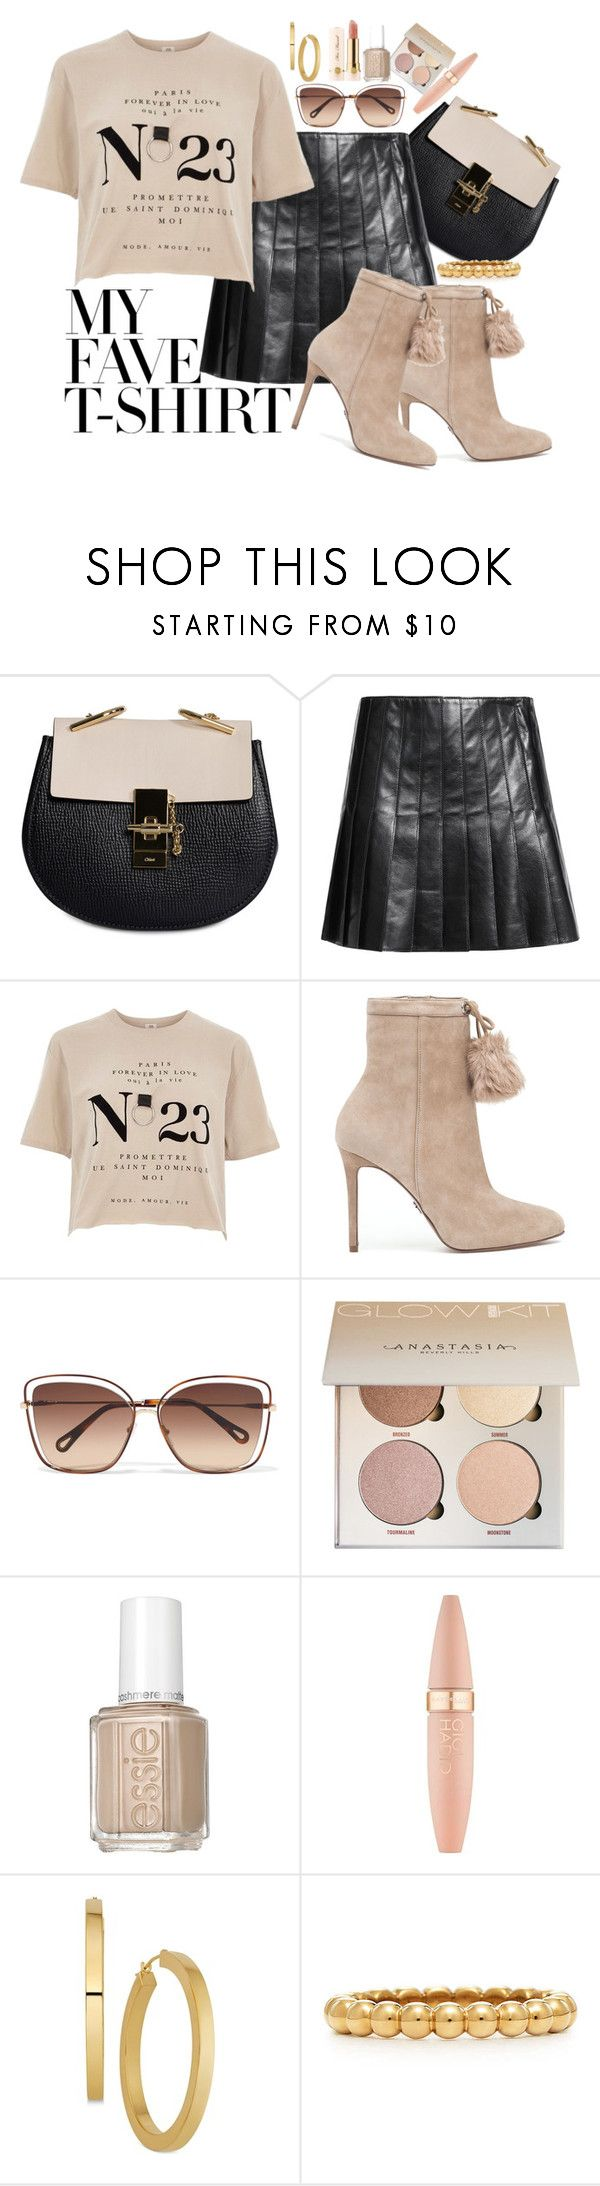 """My Fave TShirt"" by marionmeyer ❤ liked on Polyvore featuring Chloé, Belstaff, River Island, MICHAEL Michael Kors, Essie, Maybelline, Too Faced Cosmetics and MyFaveTshirt"